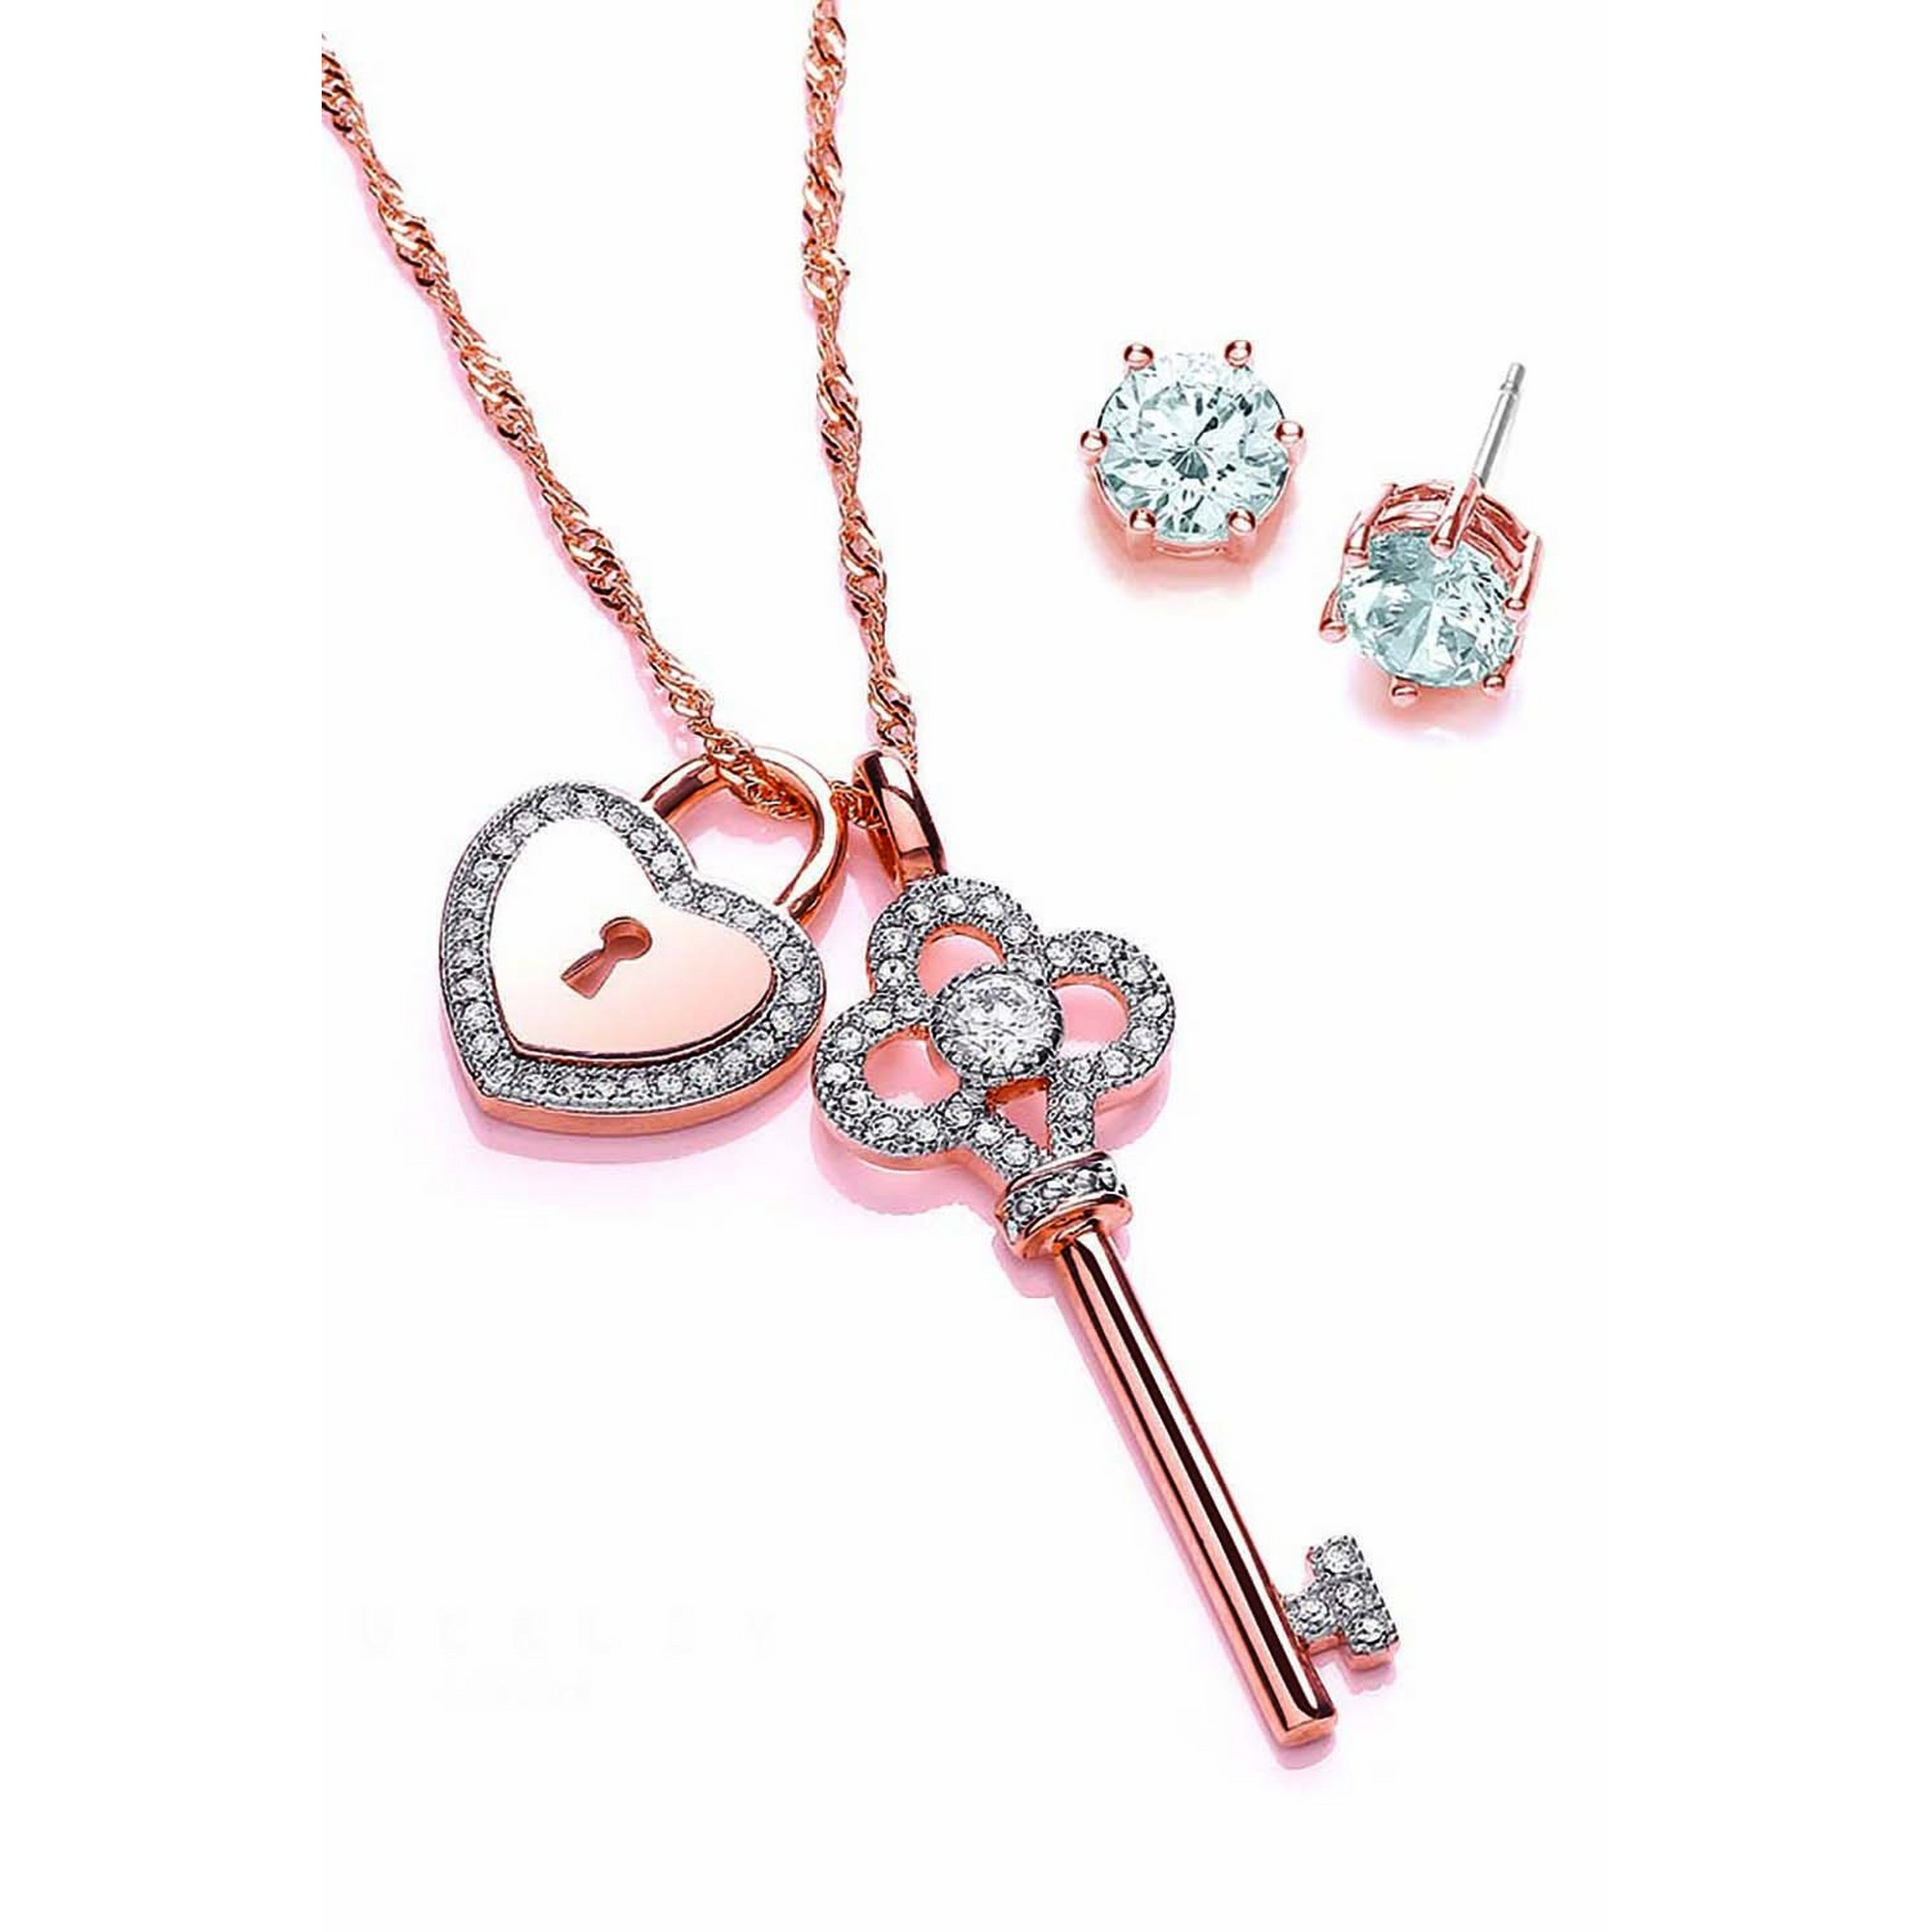 Image of Buckley London Rose Gold Key and Lock Jewellery Set